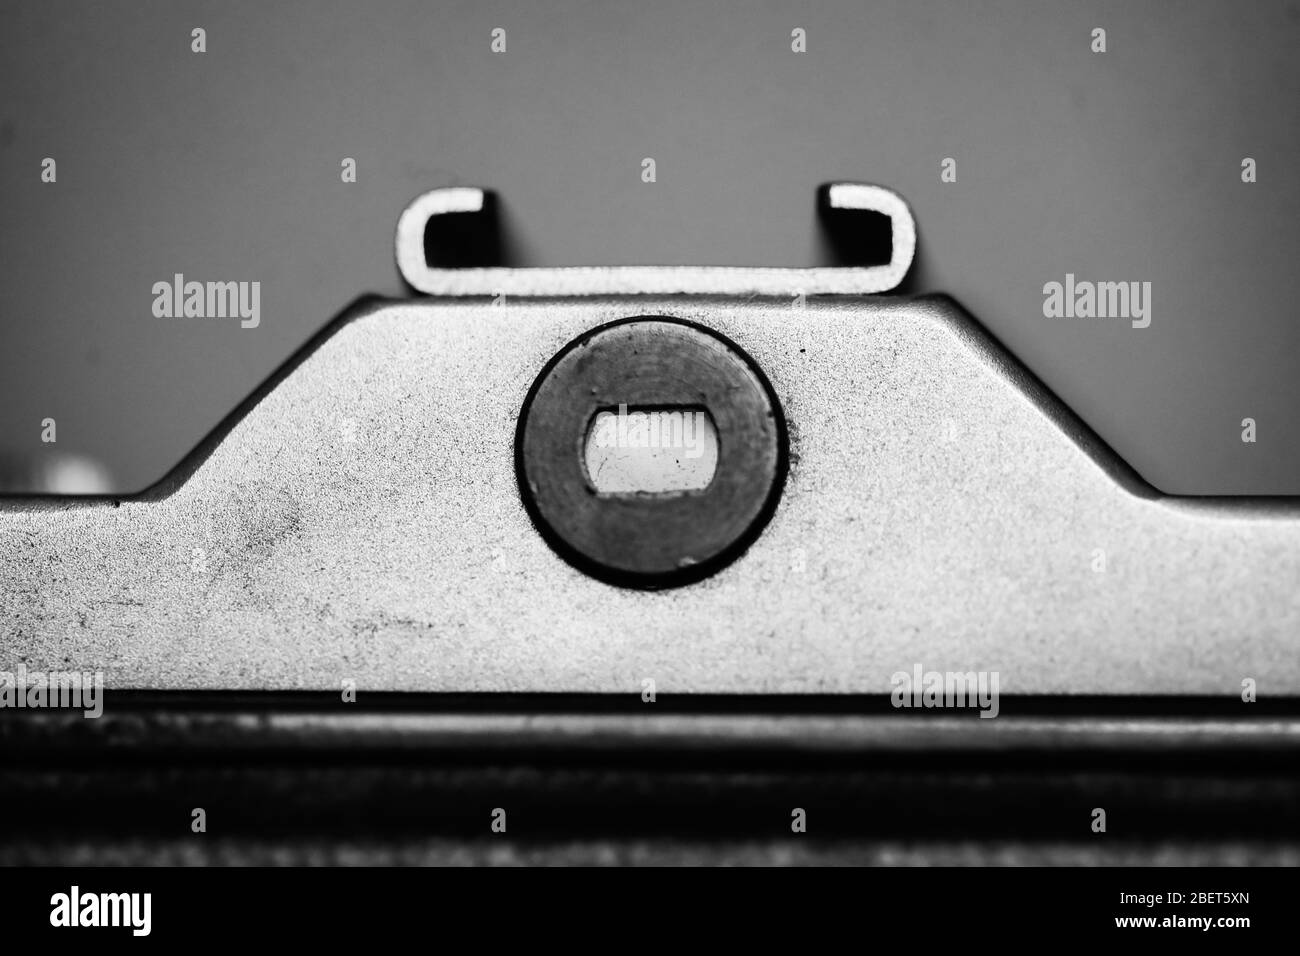 Black and white details with the viewfinder and back of an old, film photo camera. Stock Photo